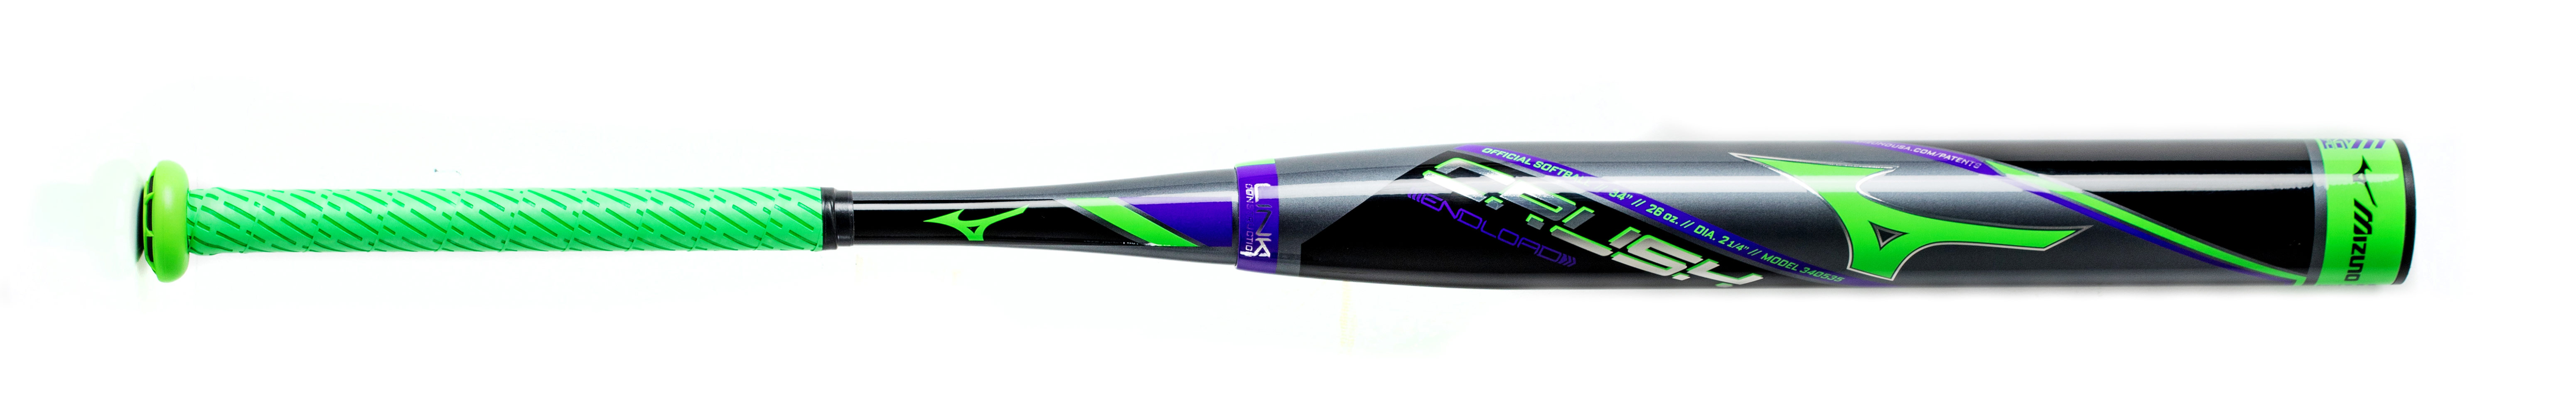 2019 Mizuno Crush 13 End Load USSSA Slo-Pitch Bat